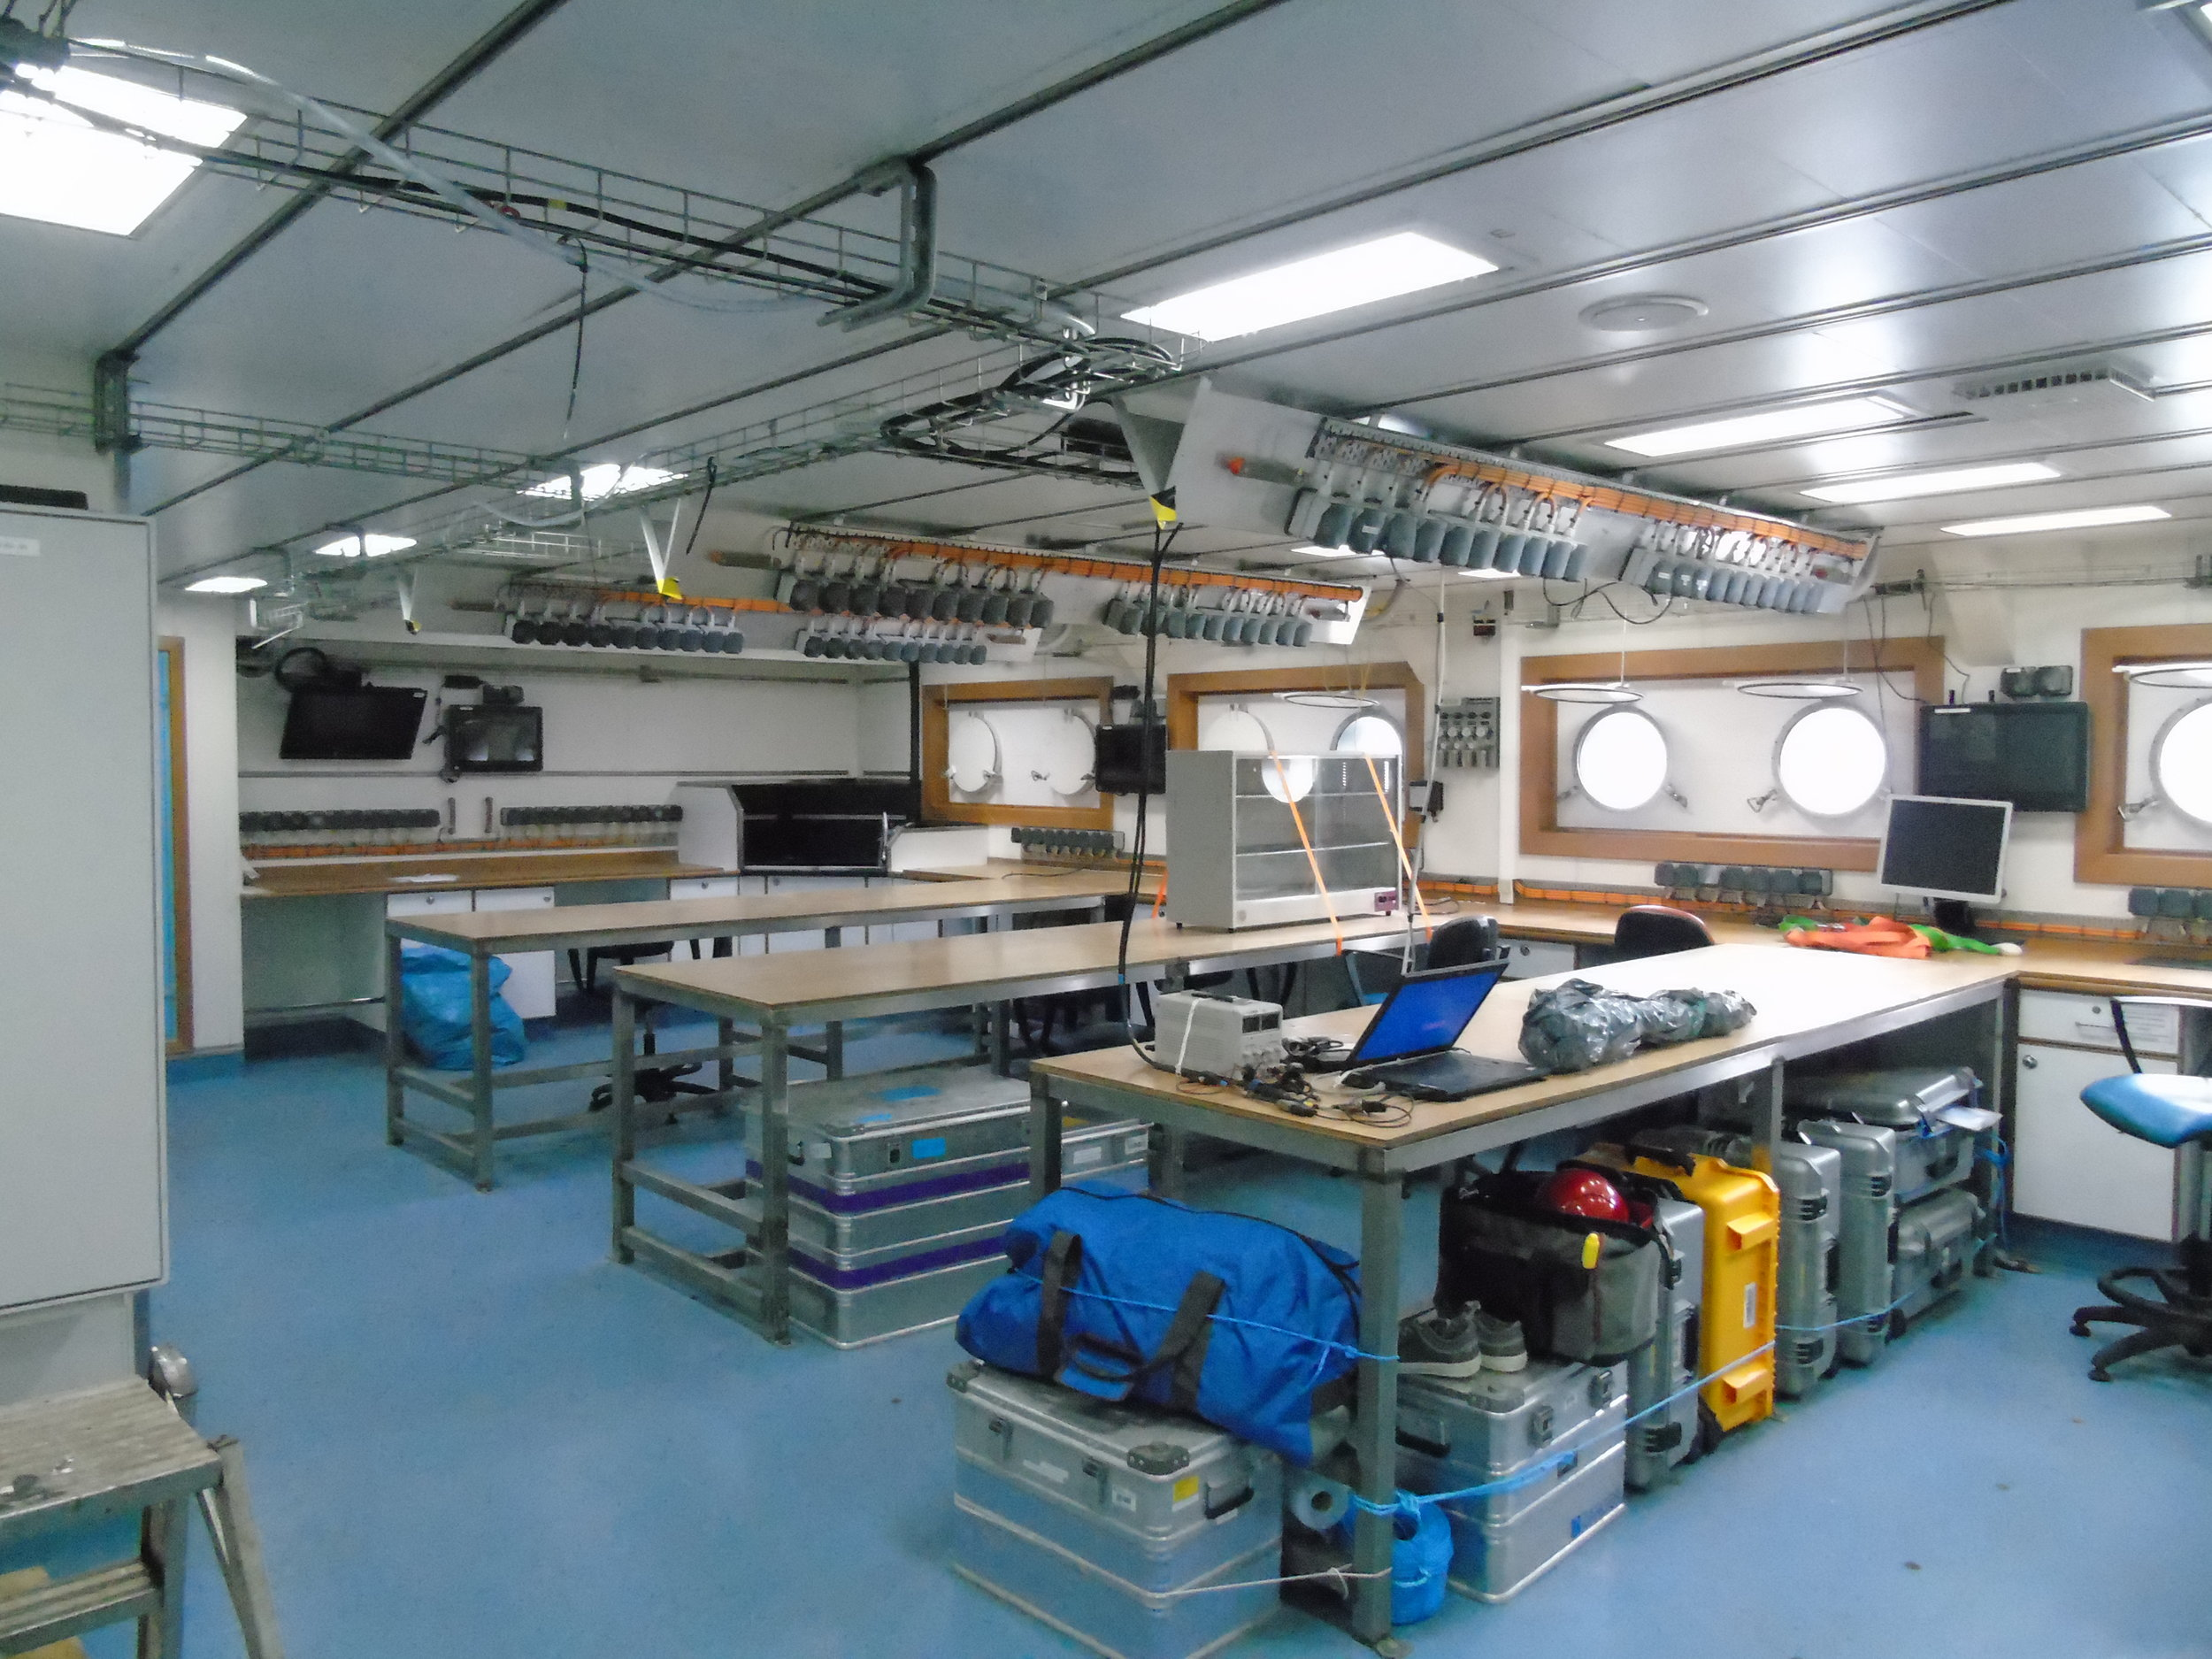 The wet lab, clean and quiet after being filled with sea birds.